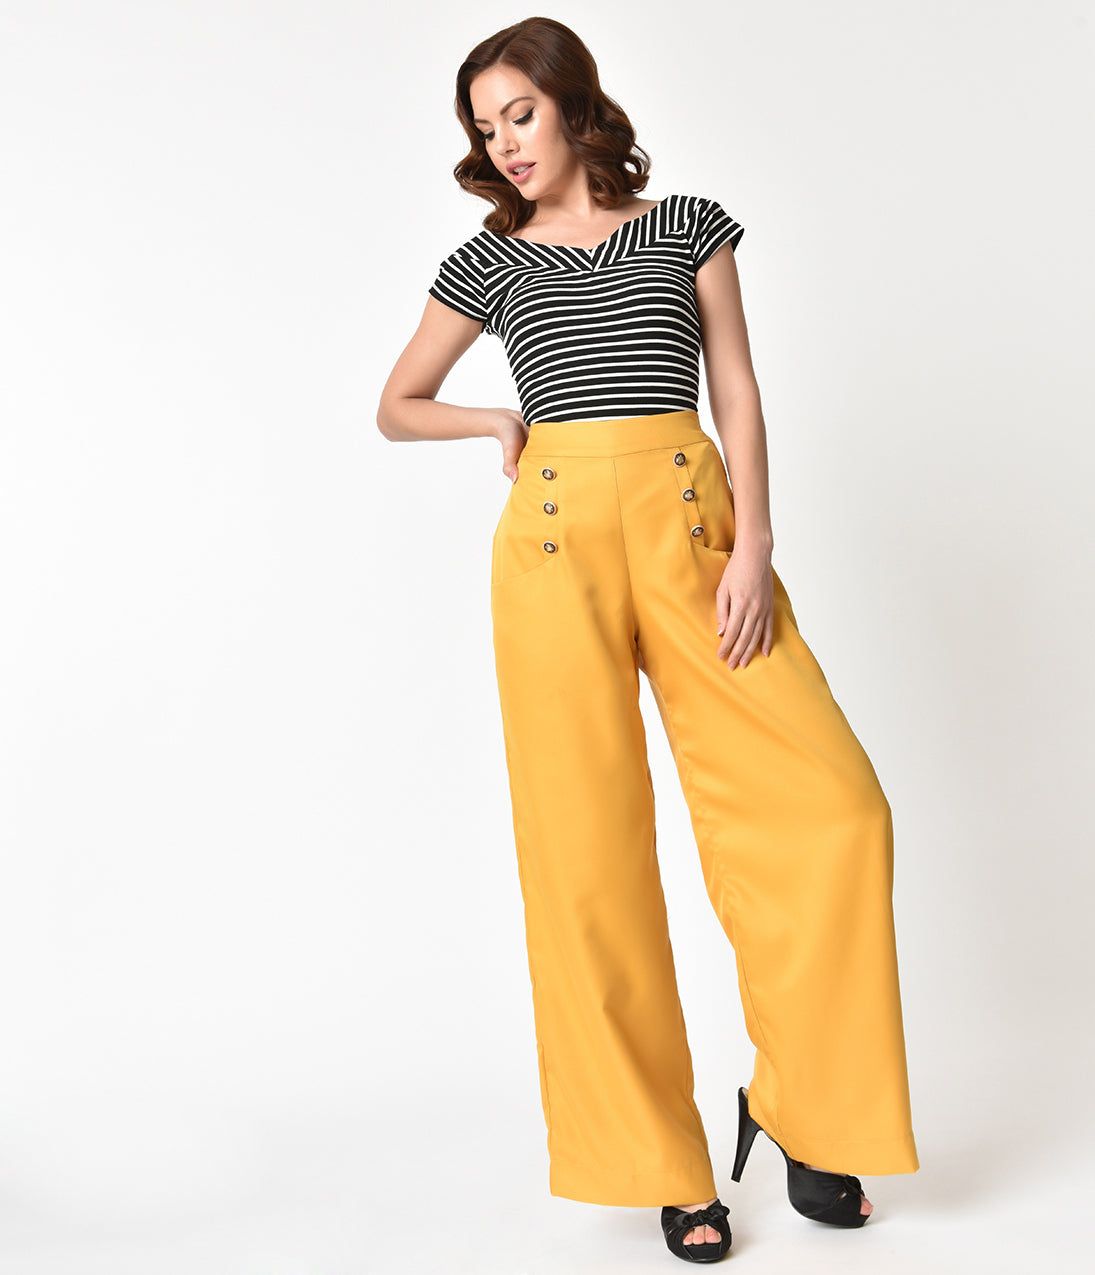 1950s Pants & Jeans- High Waist, Wide Leg, Capri, Pedal Pushers Unique Vintage 1940S Style Honey Yellow High Waist Sailor Ginger Pants $58.00 AT vintagedancer.com